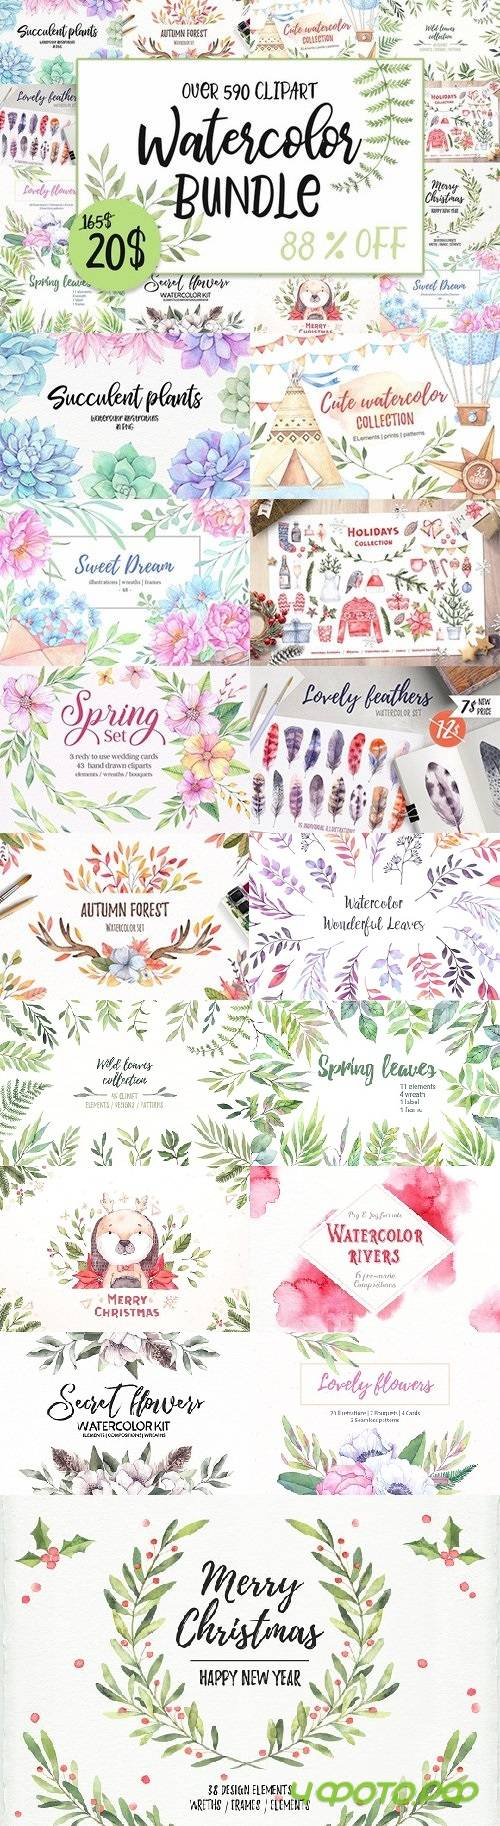 Watercolor bundle - 2231396